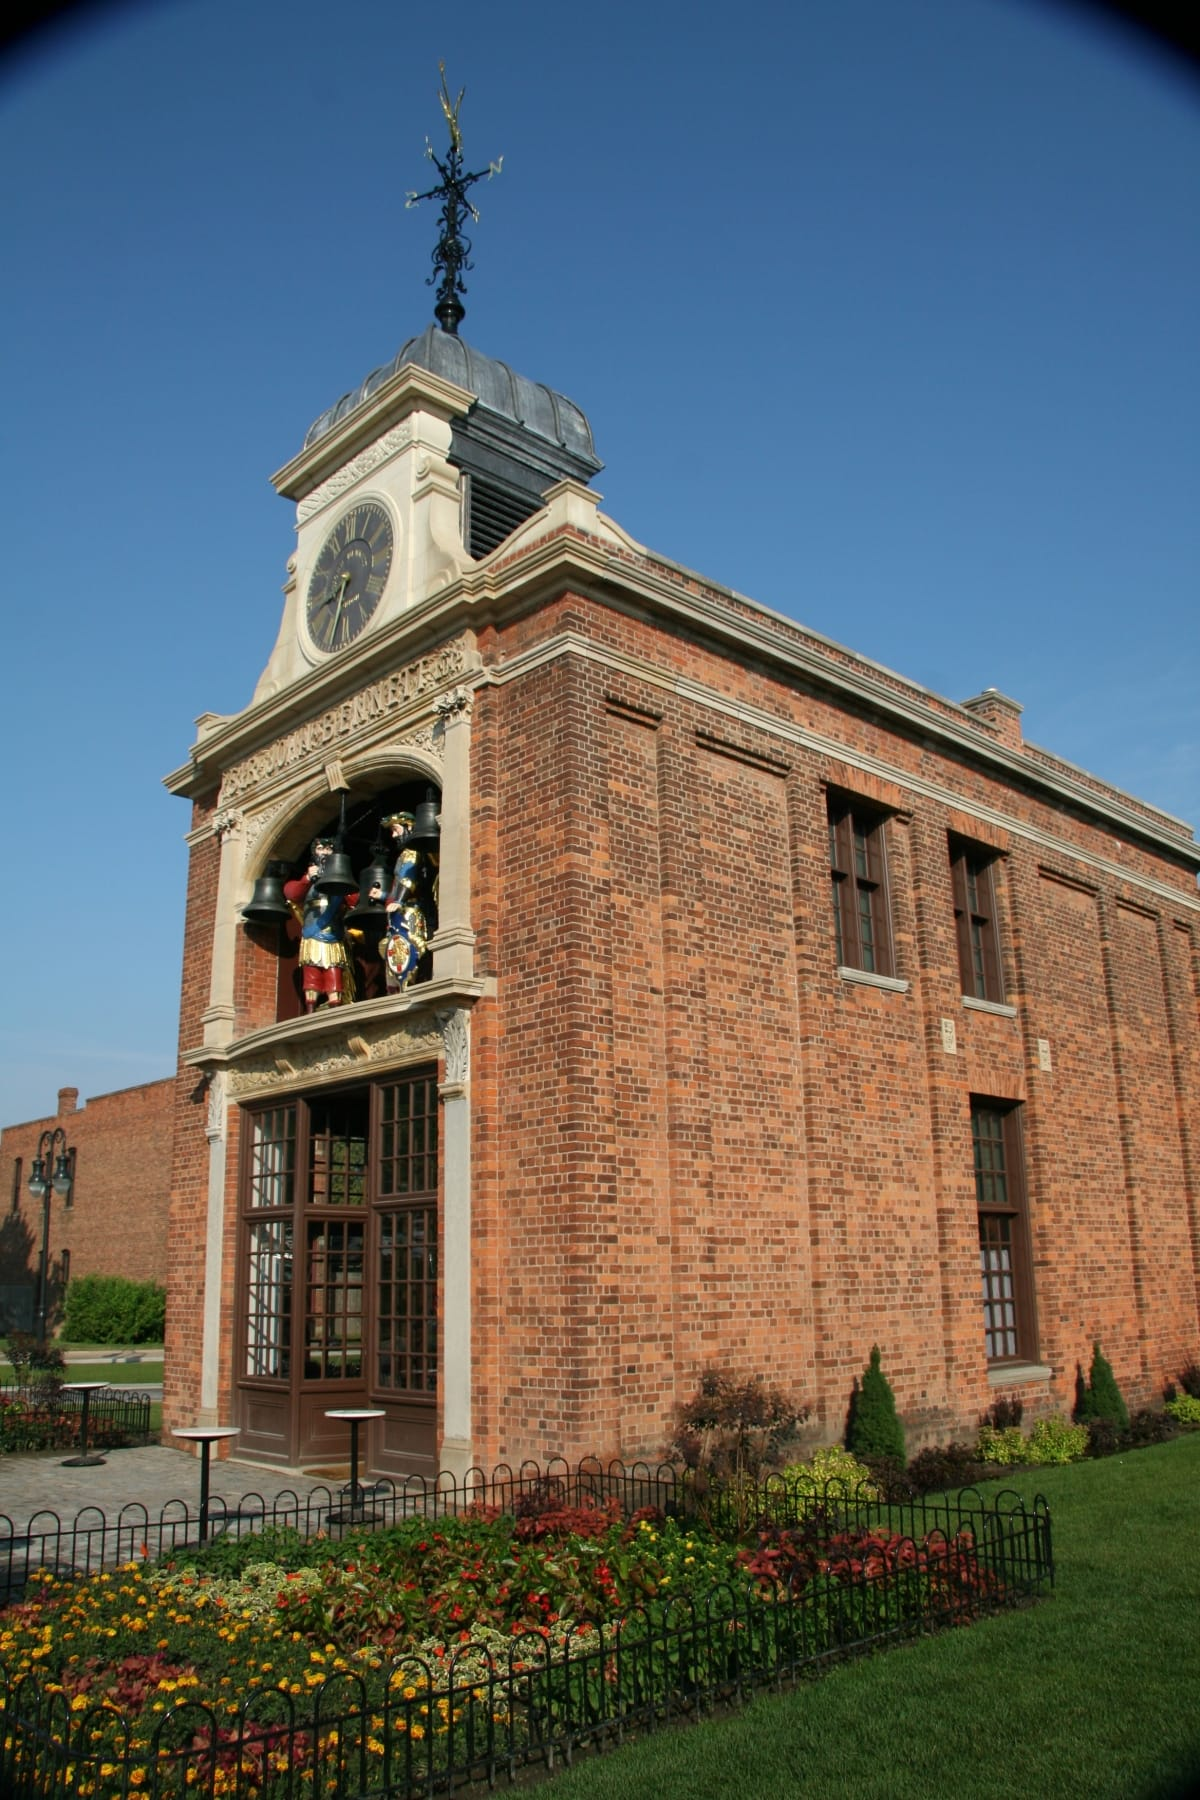 Narrow, two-story brick building with facade featuring oversize figures and a clock